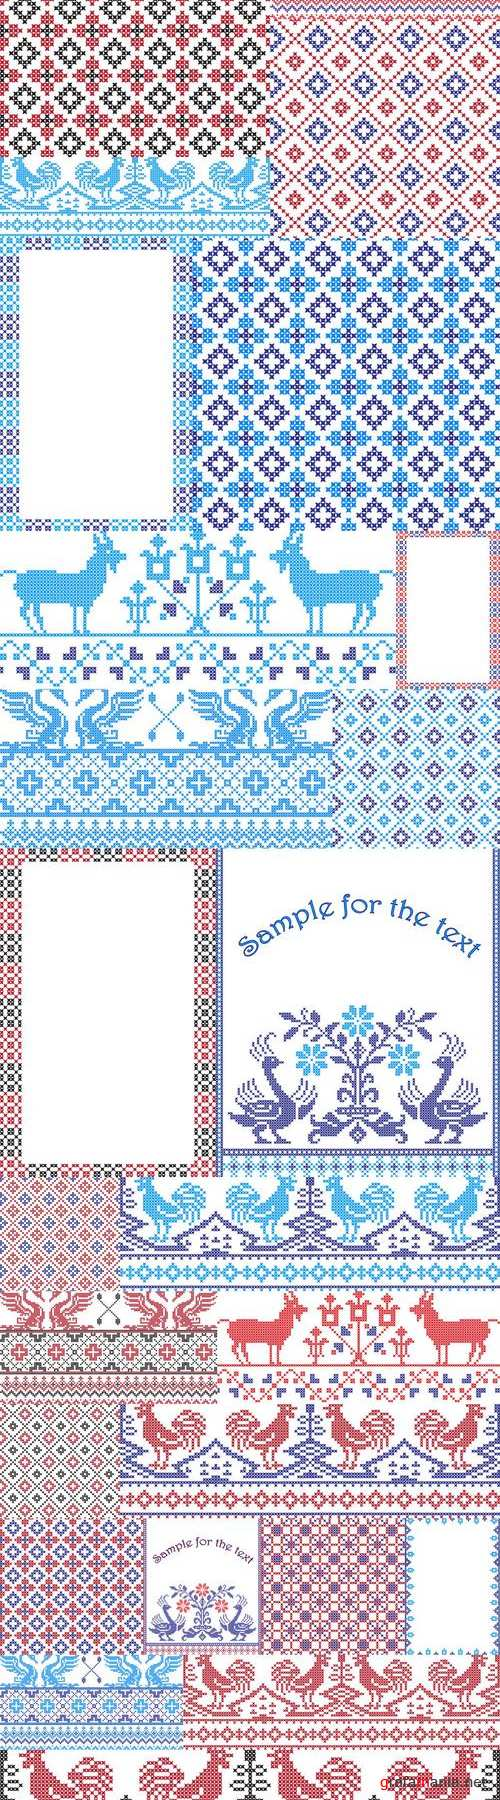 Embroidered pattern on transparent background 6